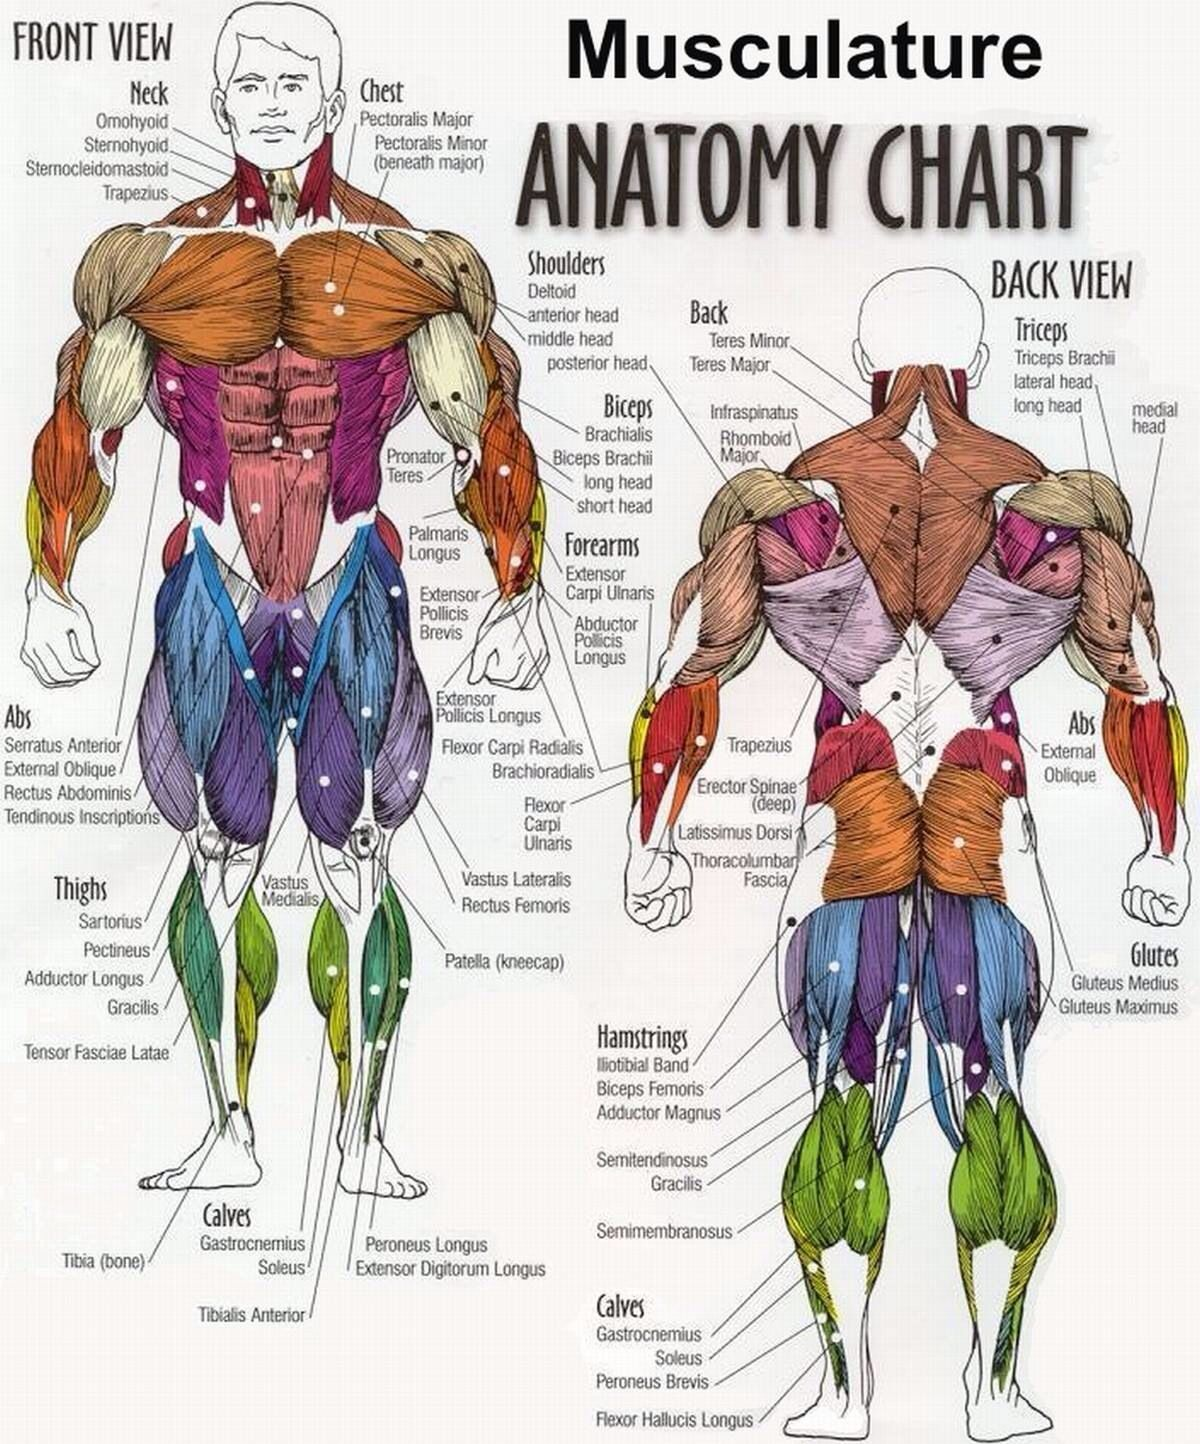 Body Building Anatomy Chart from Gym Posters | Weightlifting ...